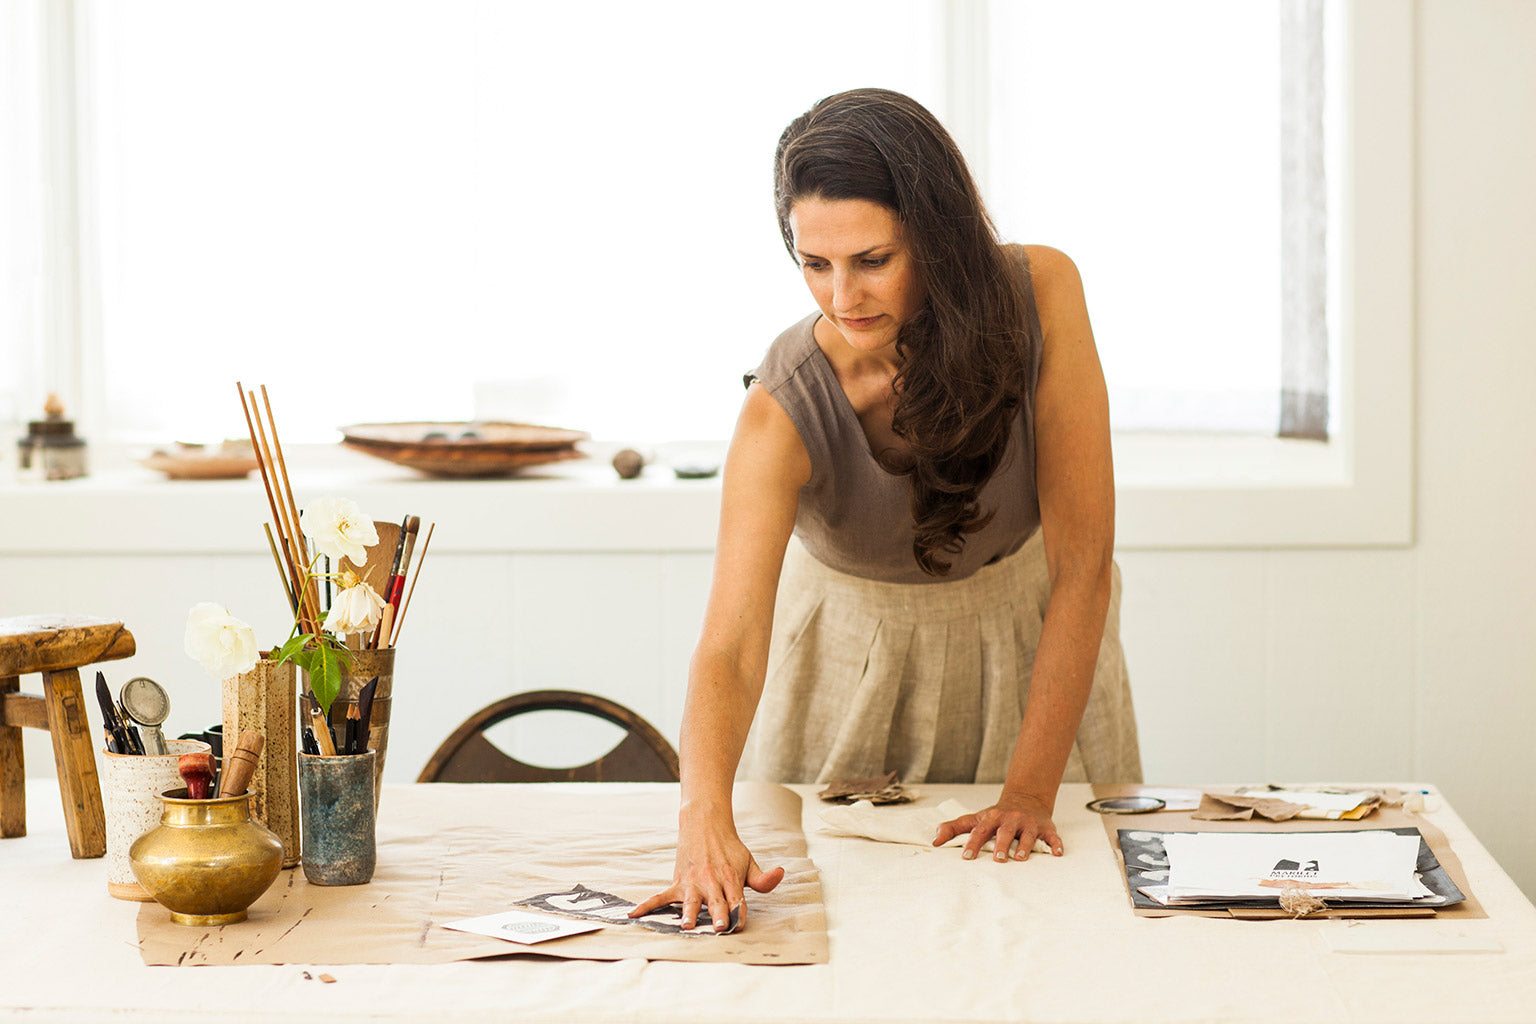 Marilet Pretorius, artist and designer, at work in her studio.